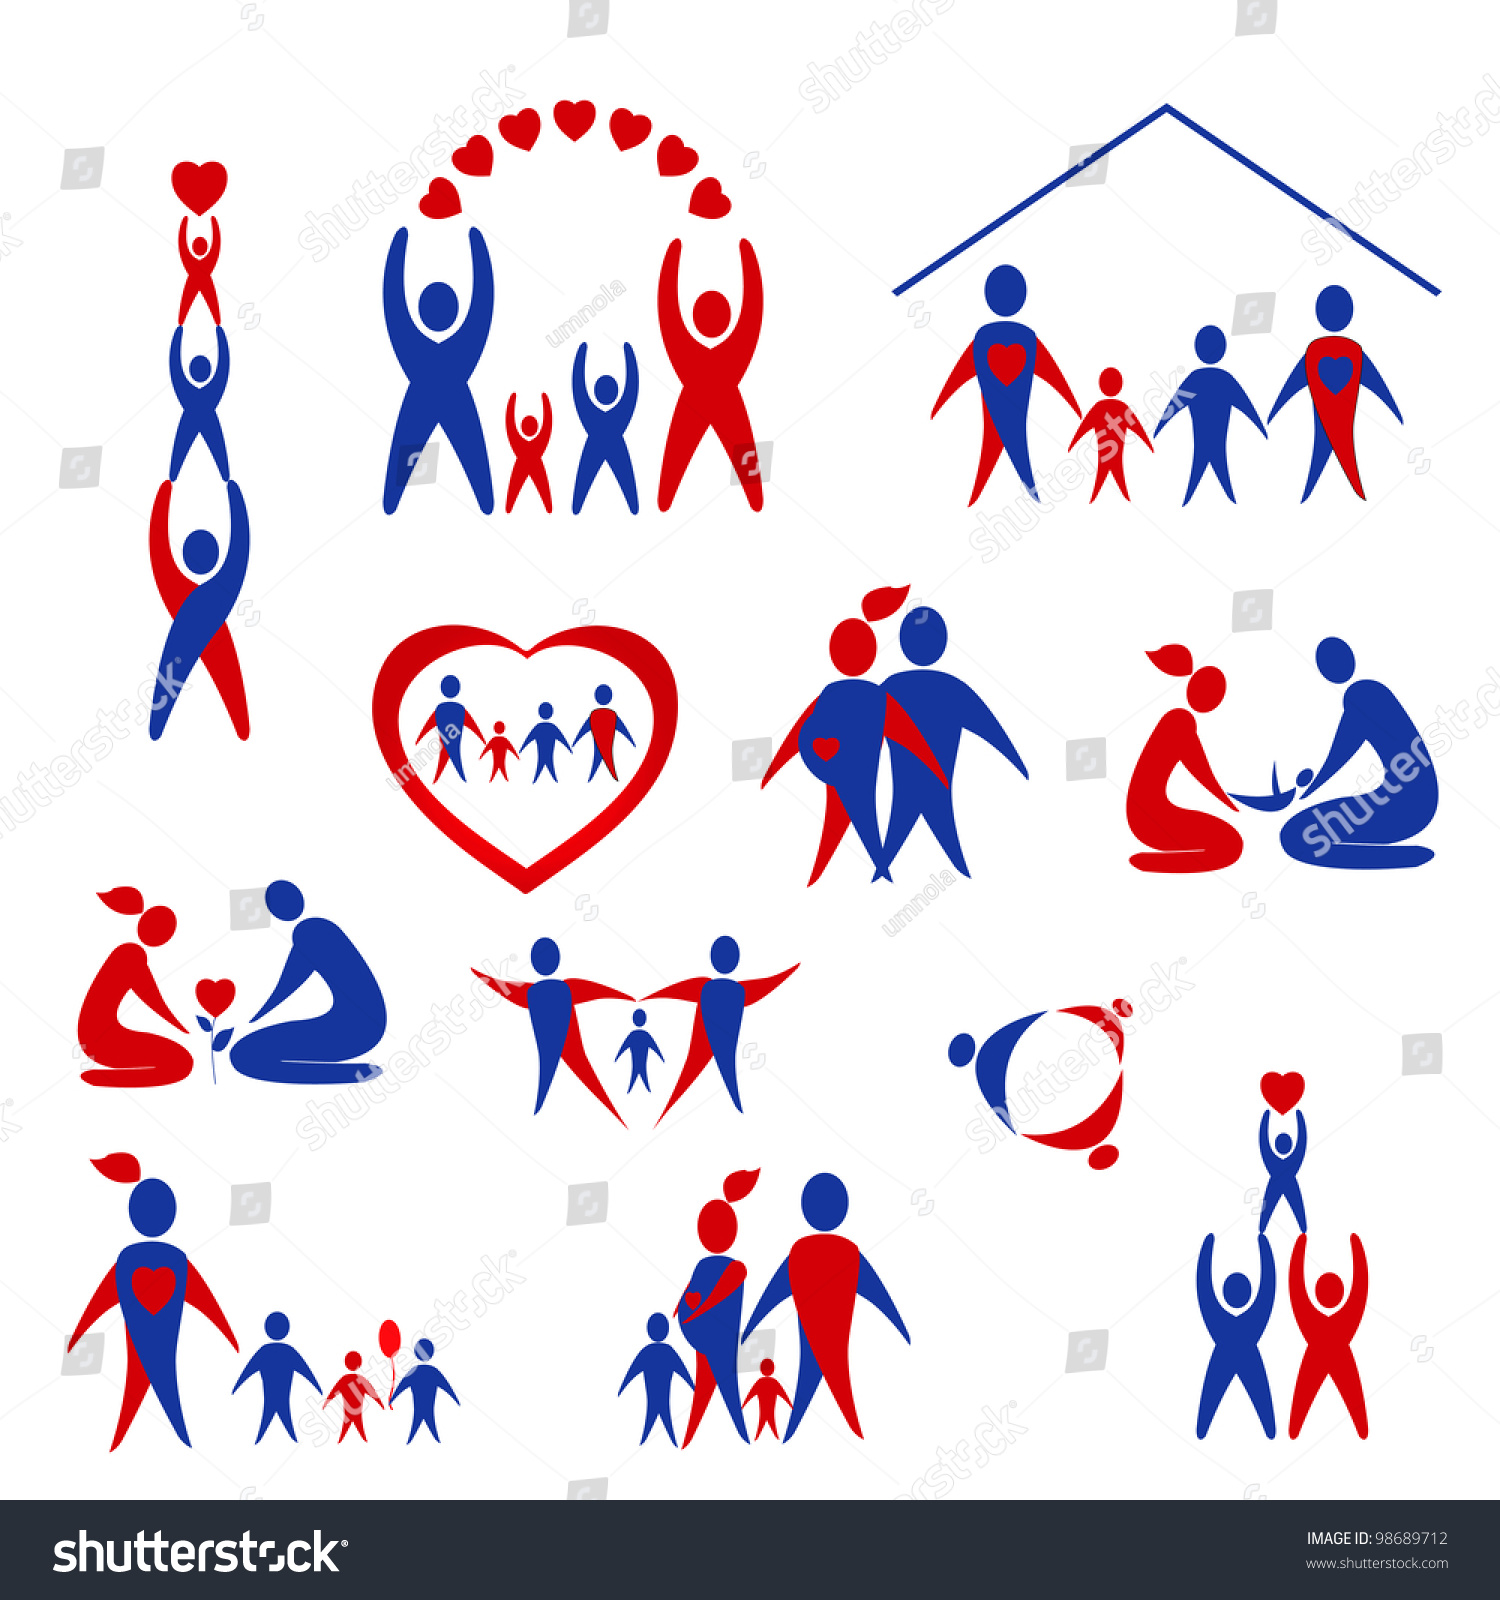 Set Of Family, Love Icons Stock Photo 98689712 : Shutterstock